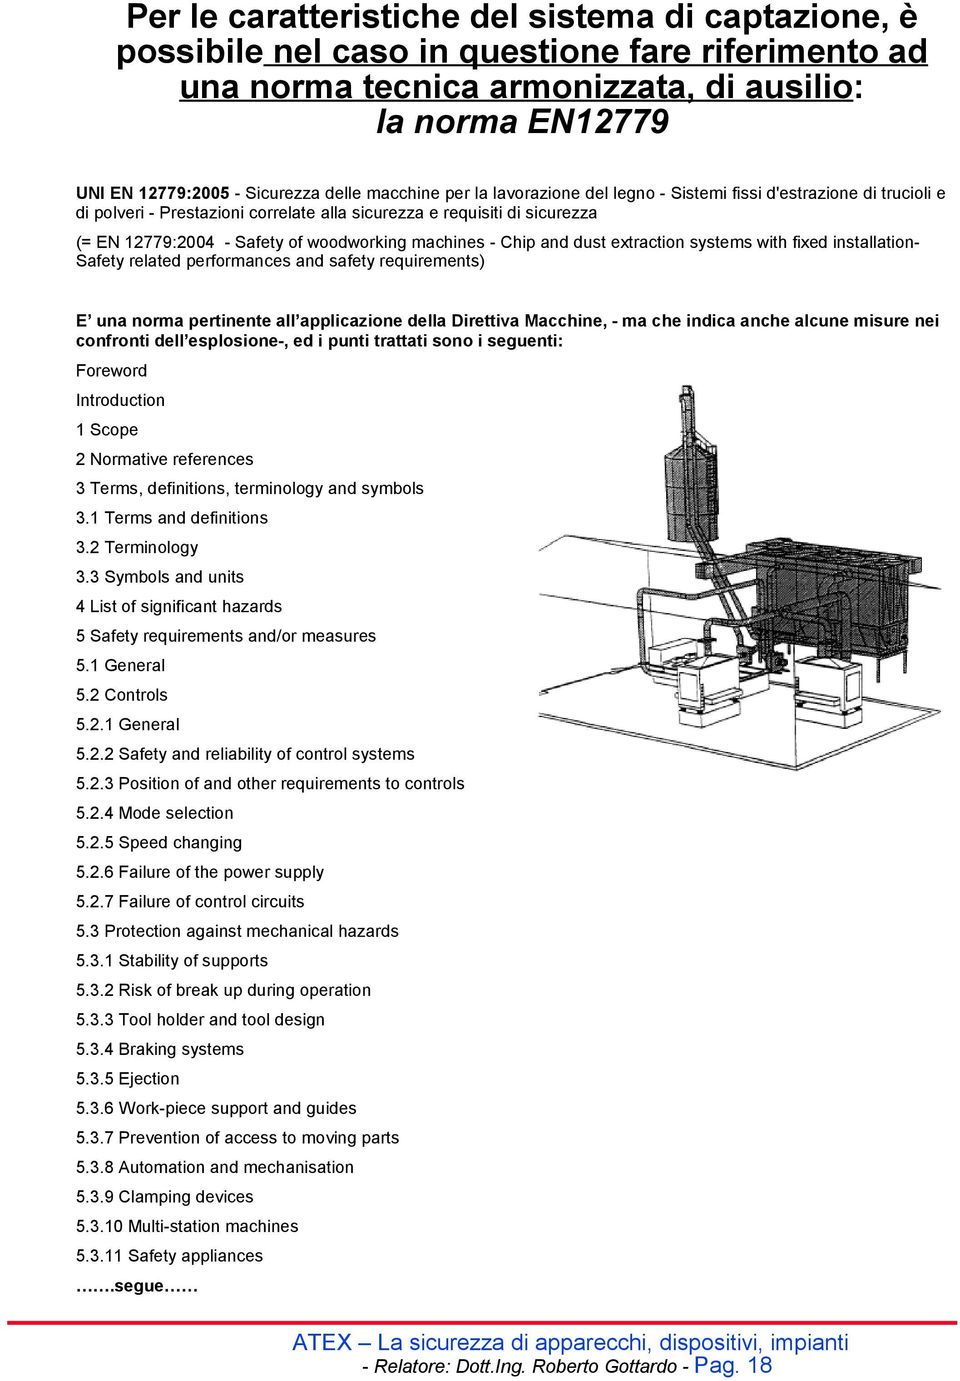 fire and explosion protection systems pdf